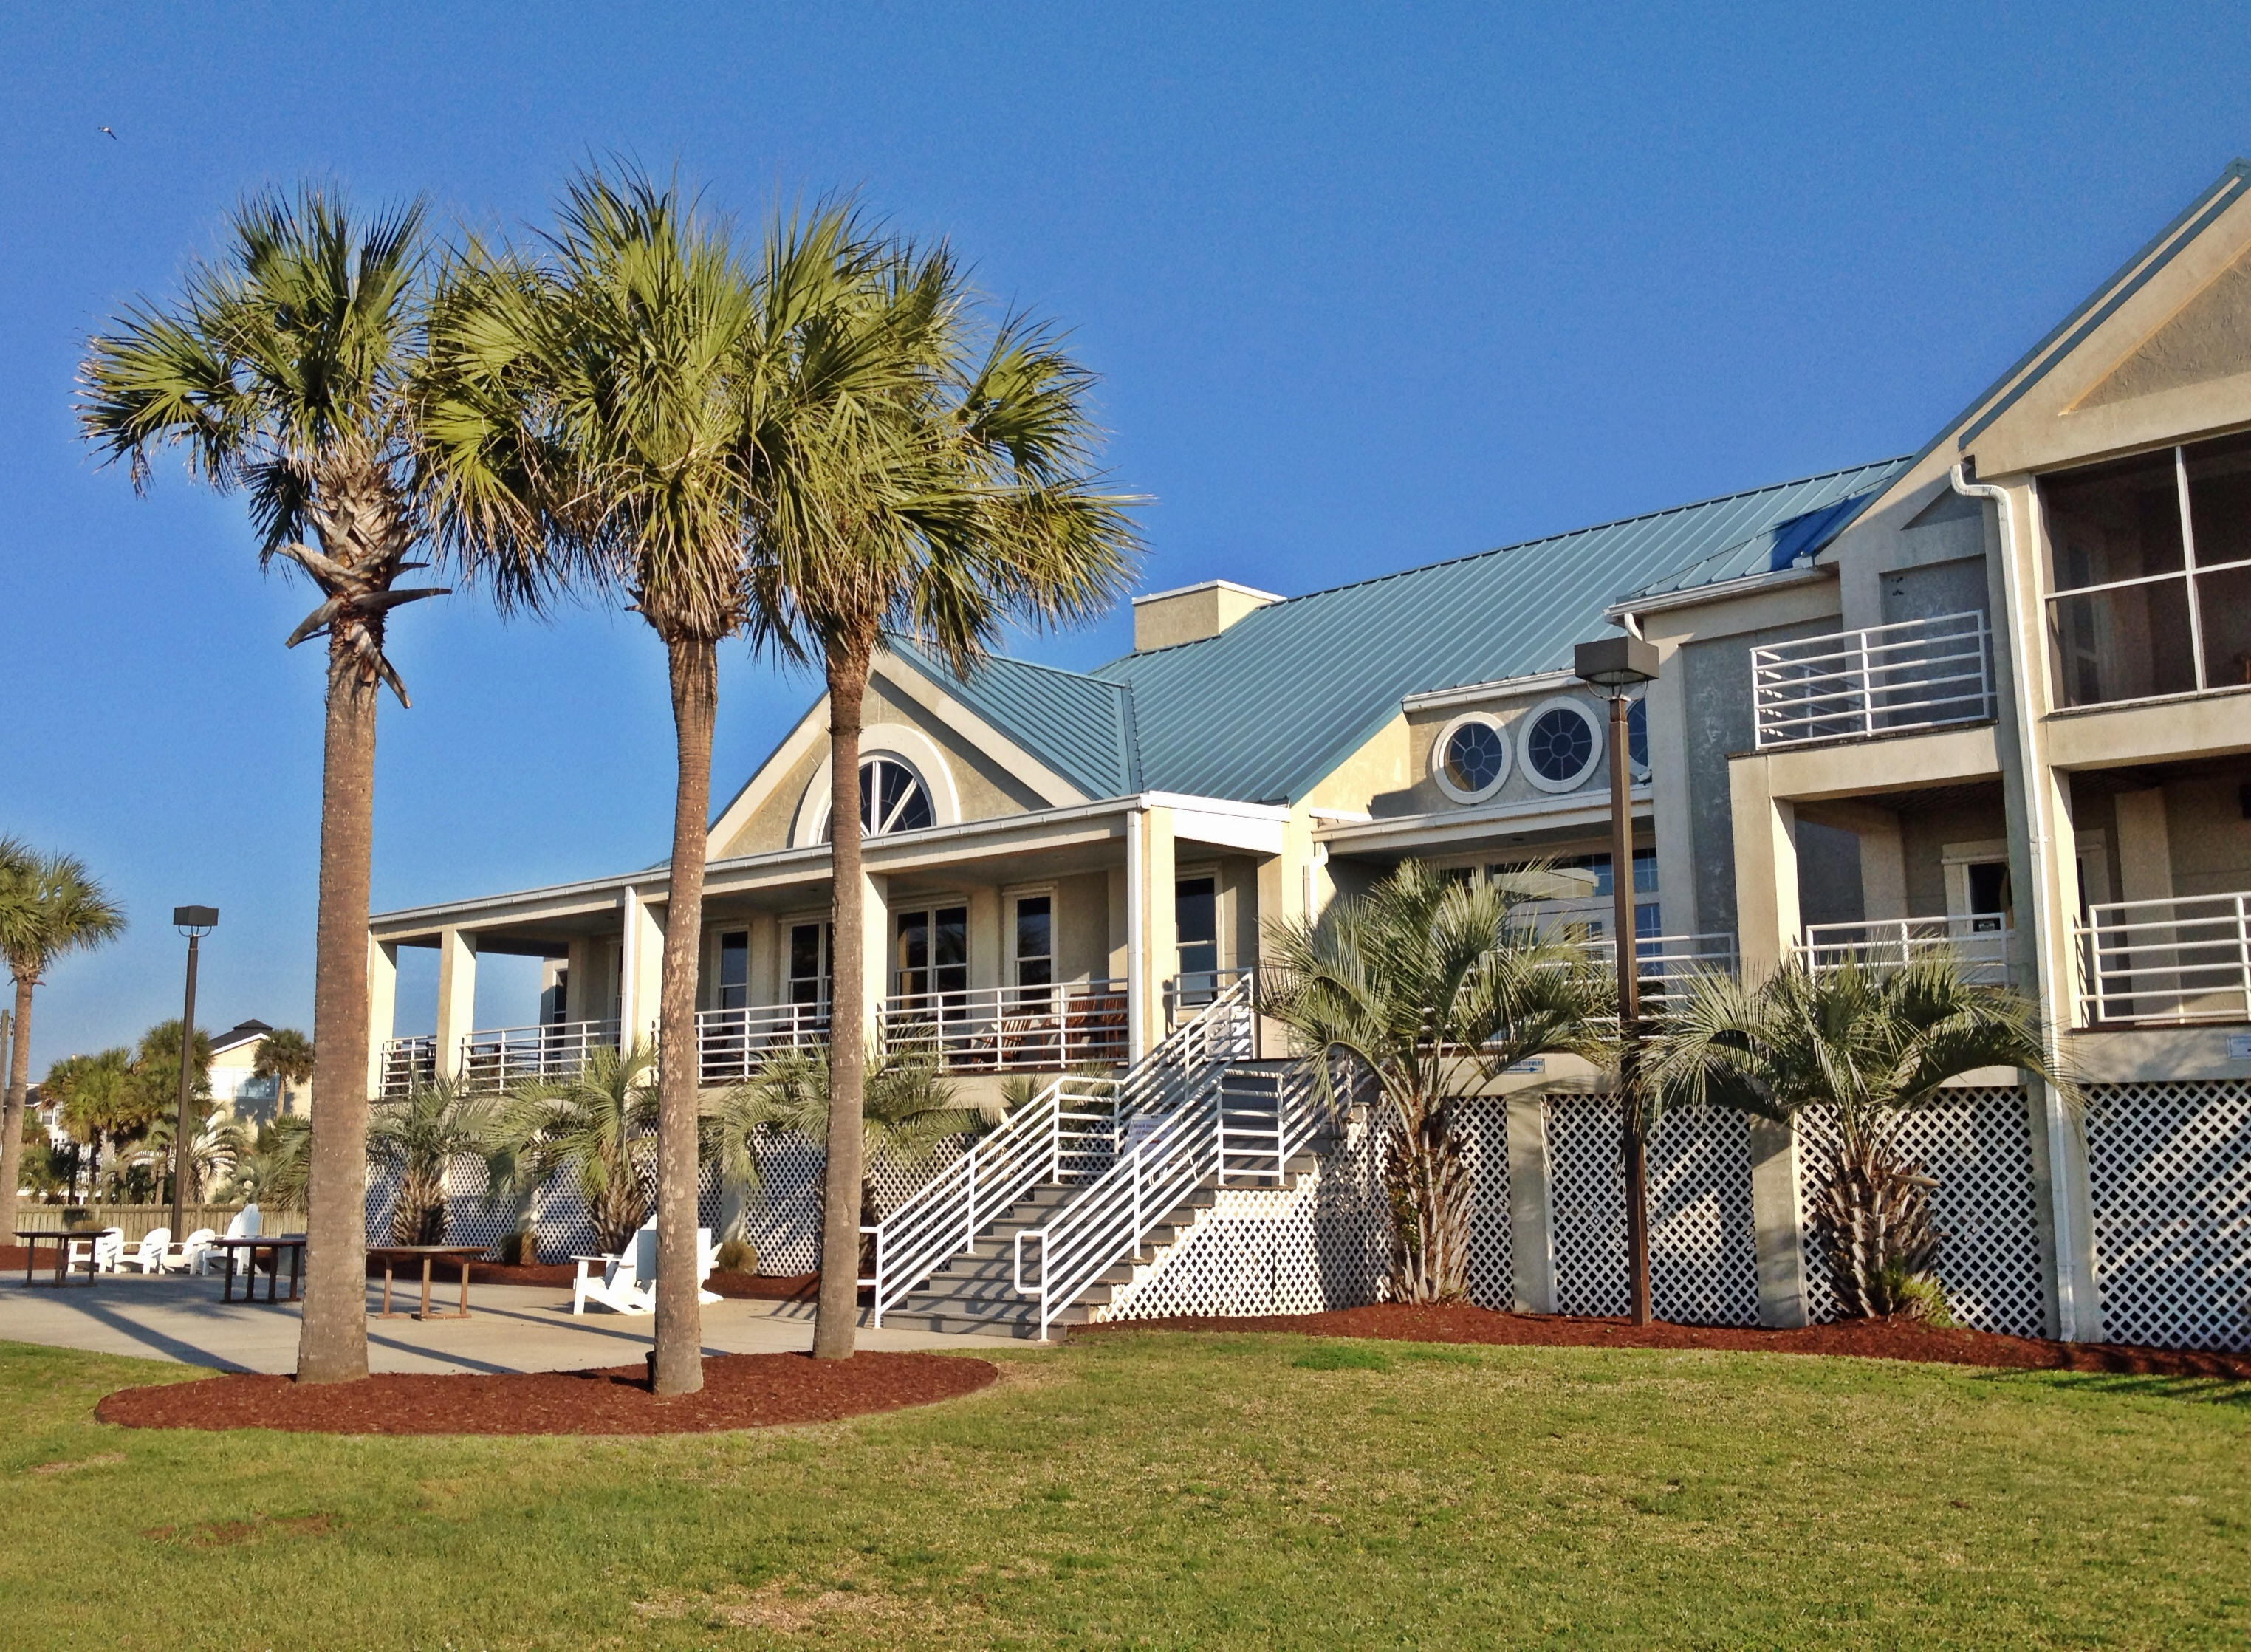 The Citadel Beach Club: Event Space - The Citadel - Charleston, SC